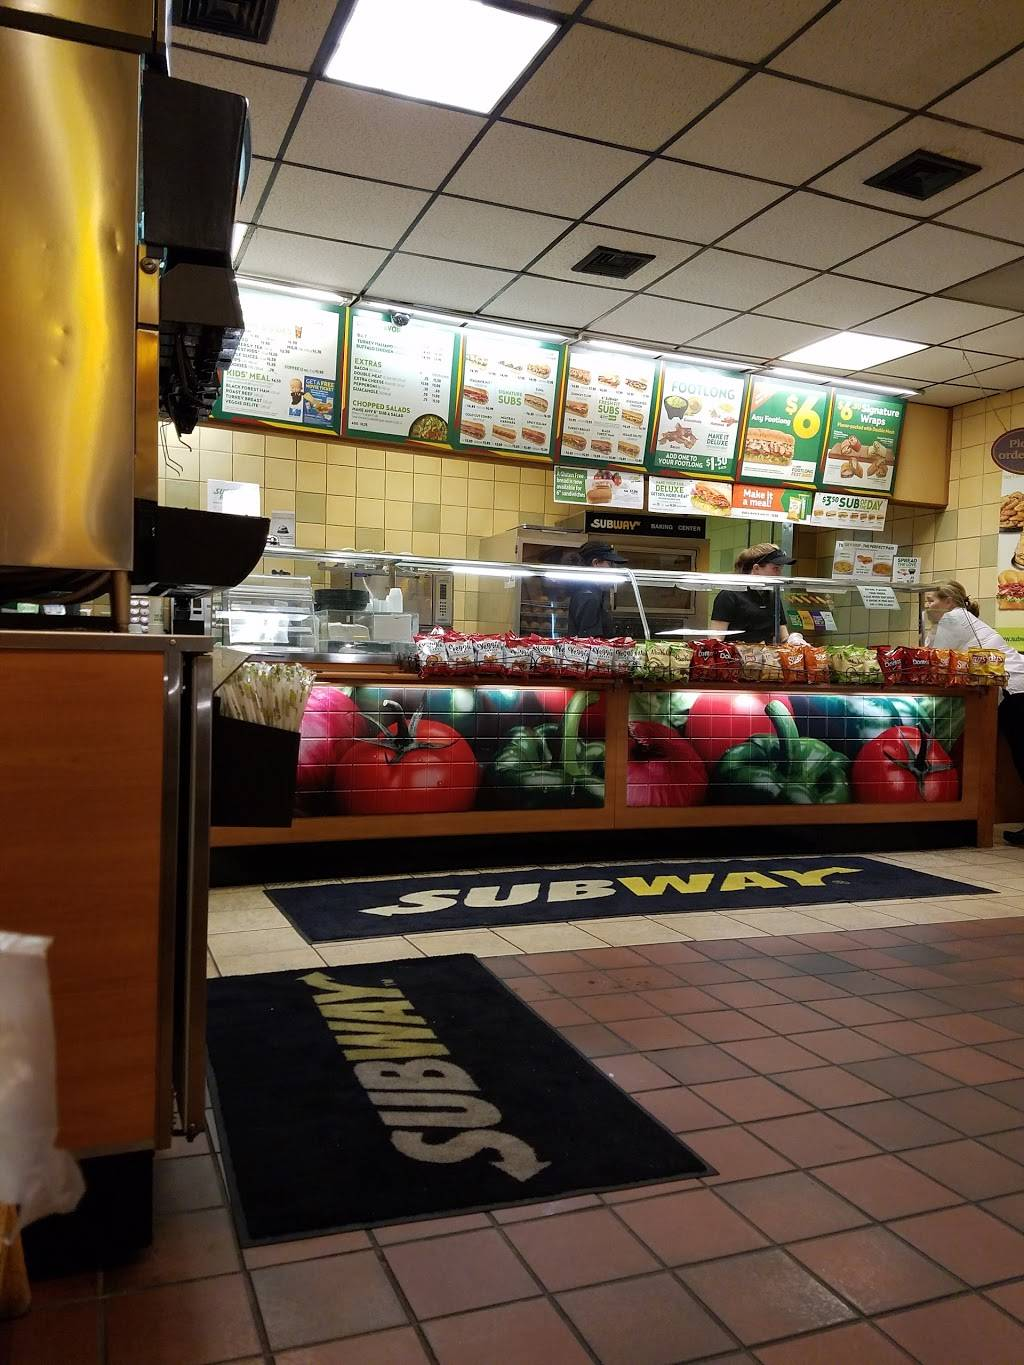 Subway | meal takeaway | 233 W Center St, West Bridgewater, MA 02379, USA | 5084275511 OR +1 508-427-5511